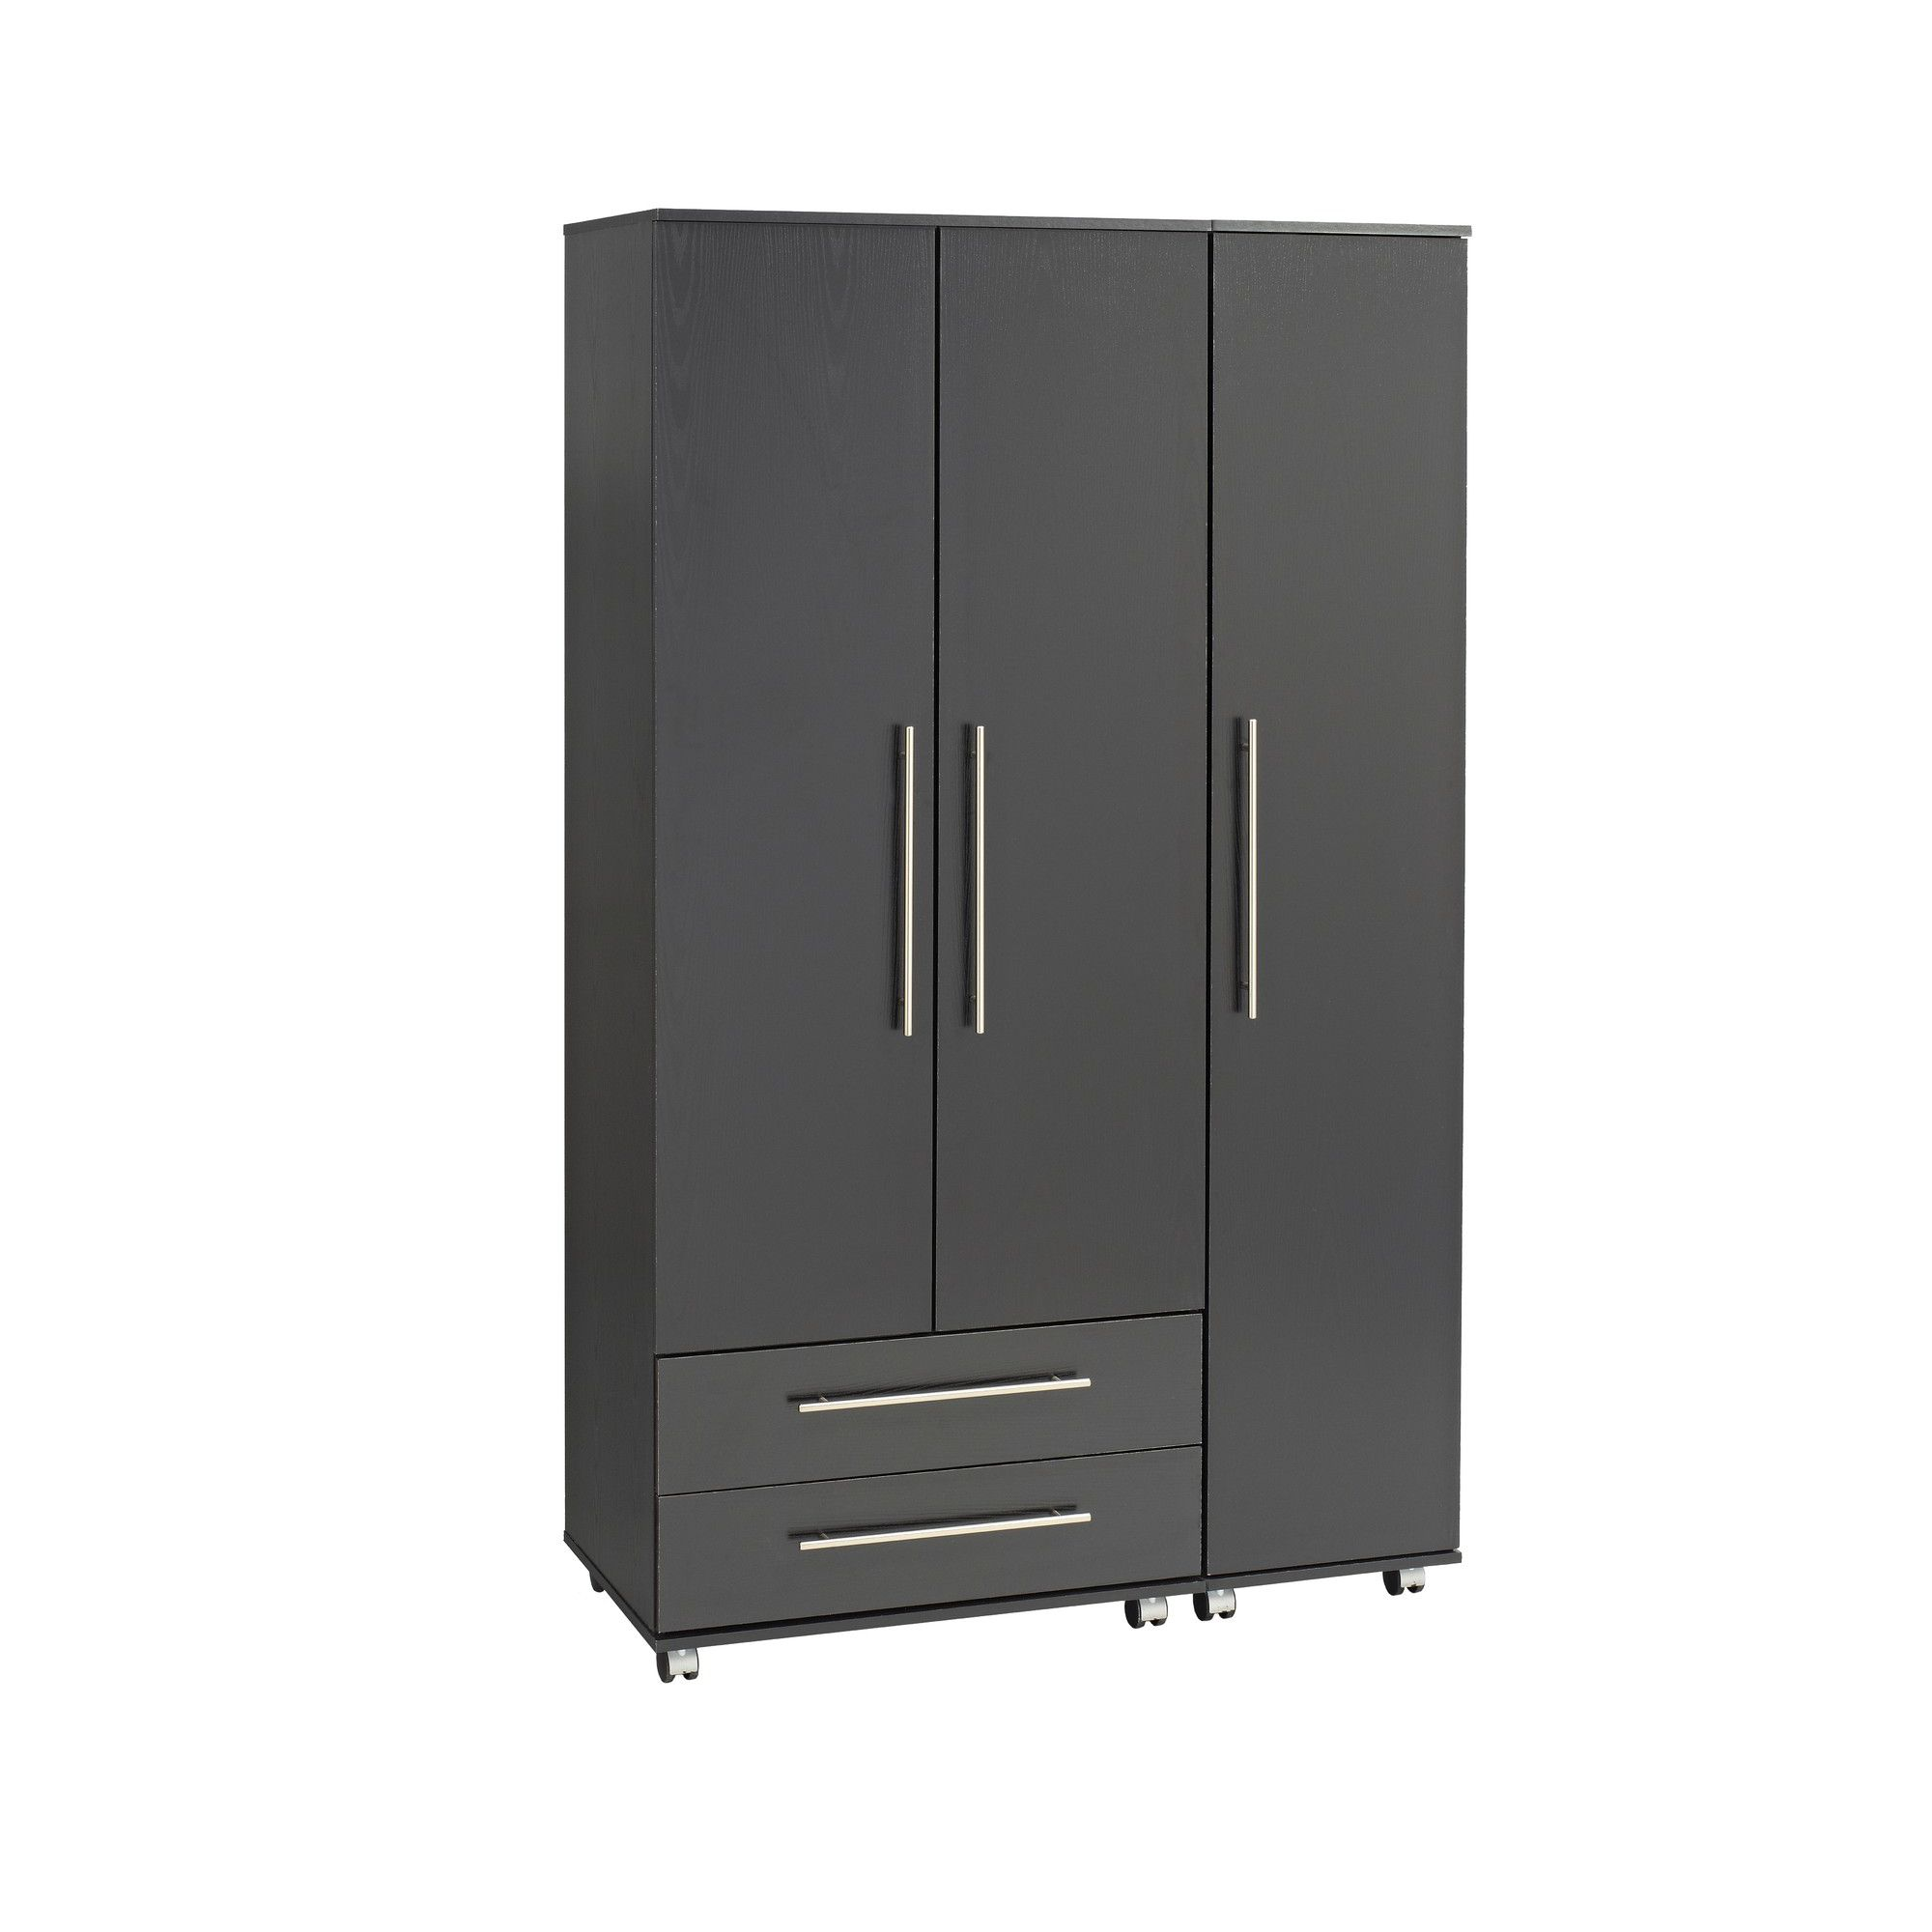 Ideal Furniture Bobby 3 Door Wardrobe - Black at Tesco Direct